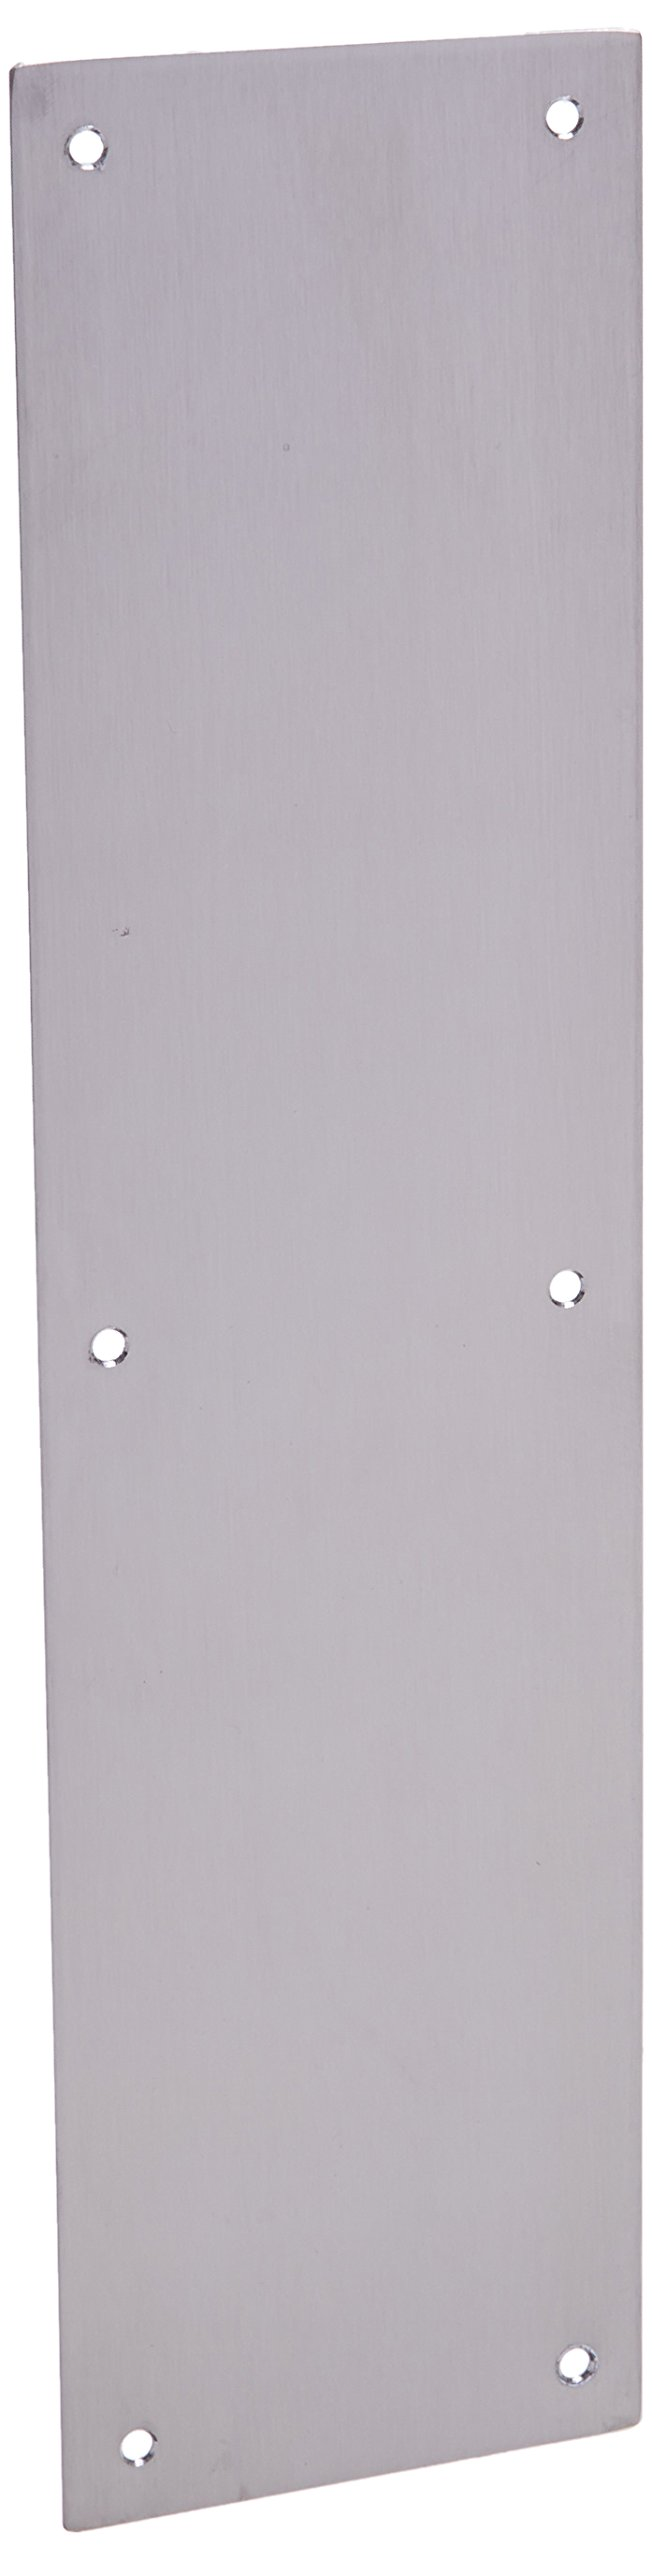 Cal Royal PSPL401632D Push Plate, 4 by 16-Inch, Satin Stainless Steel